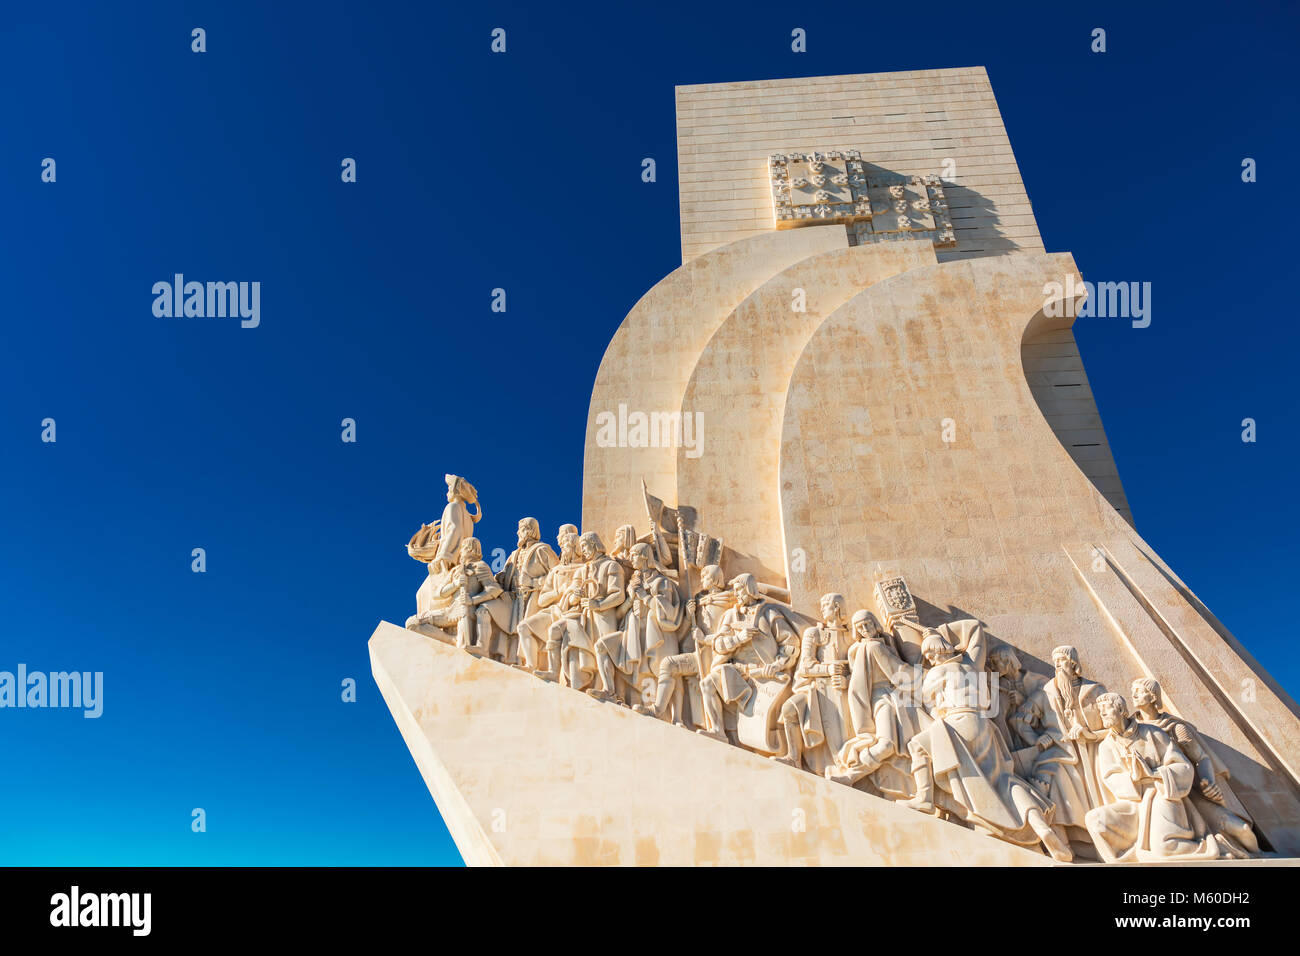 Detail of famous Monument of the Discoveries in Belem area of Lisbon, Portugal. - Stock Image